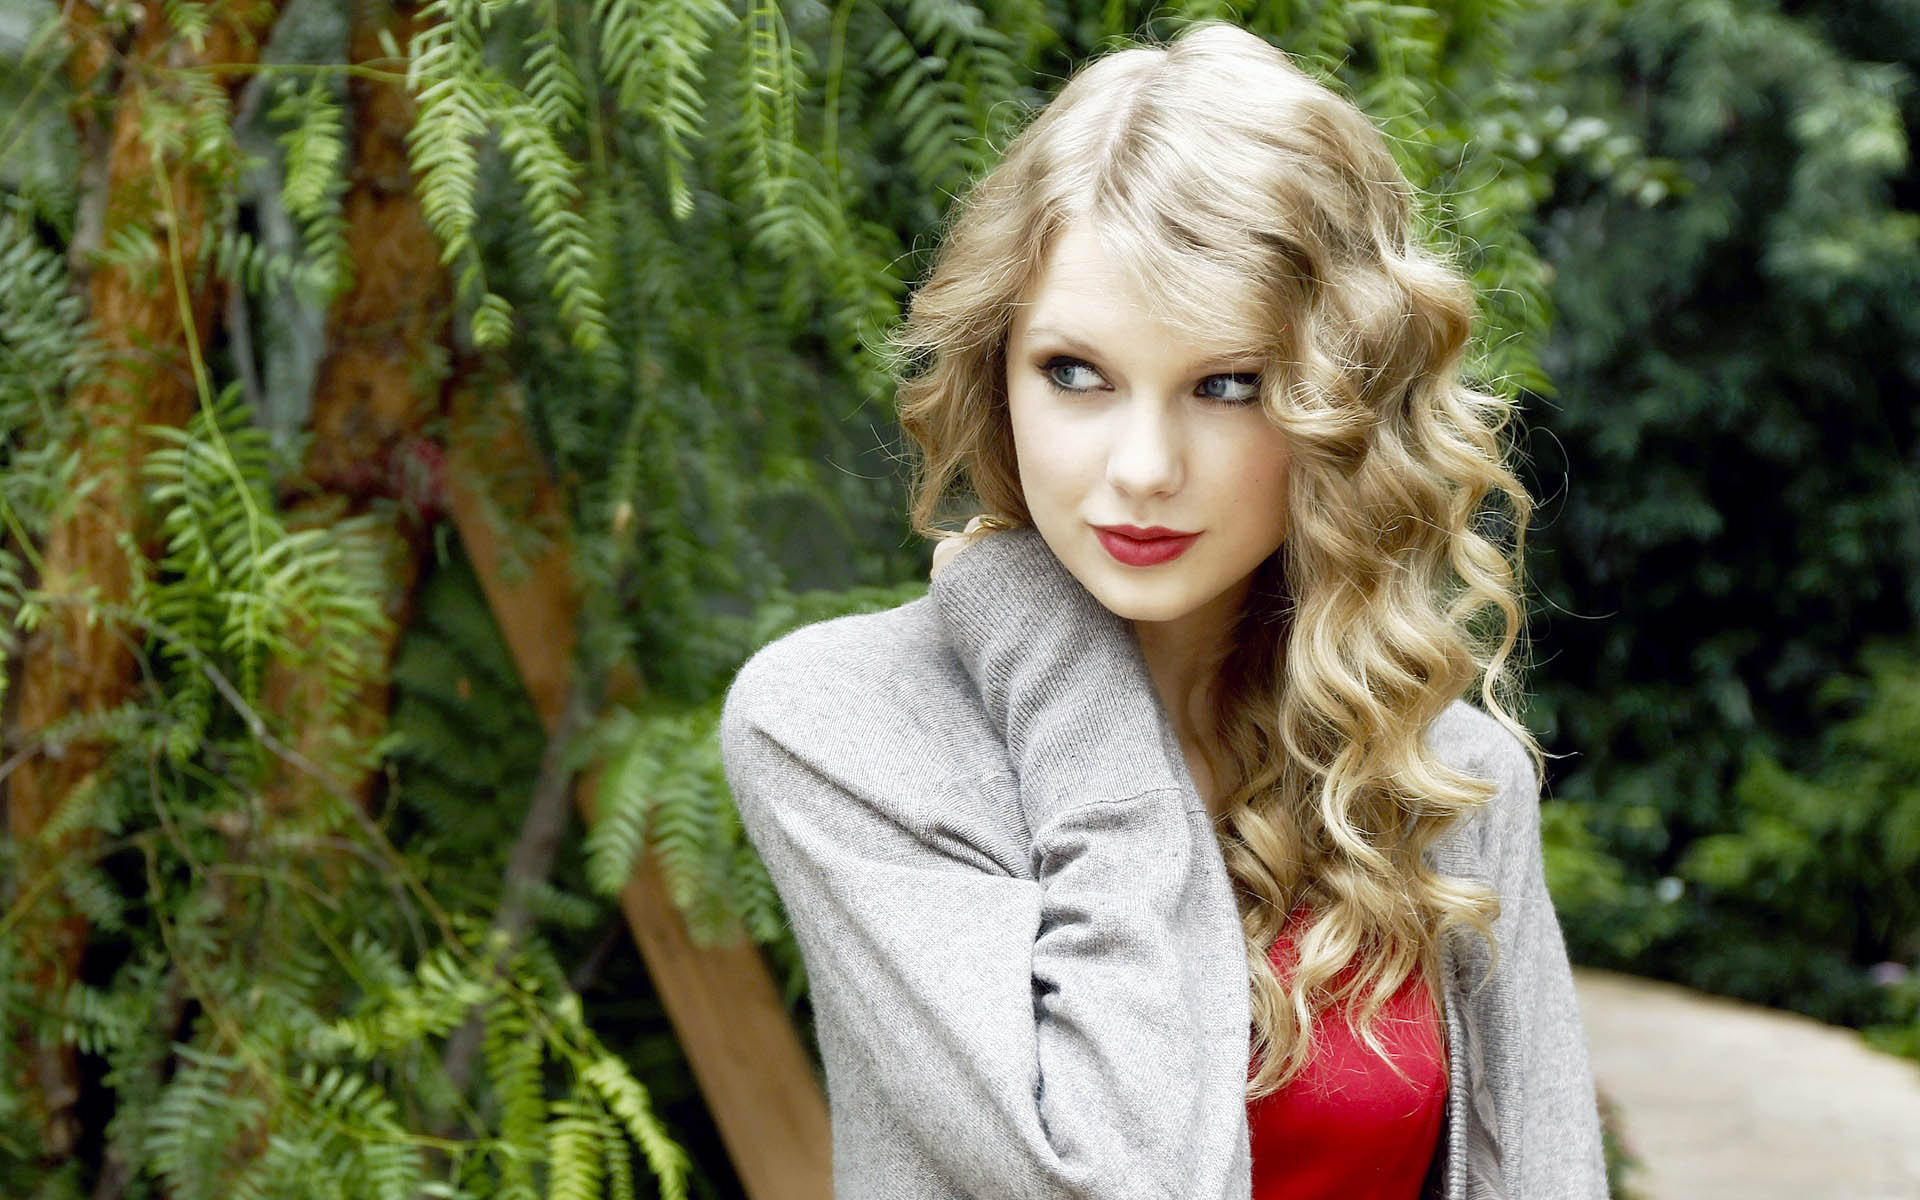 lovely taylor swift nice pose with background trees free desktop mobile images hd